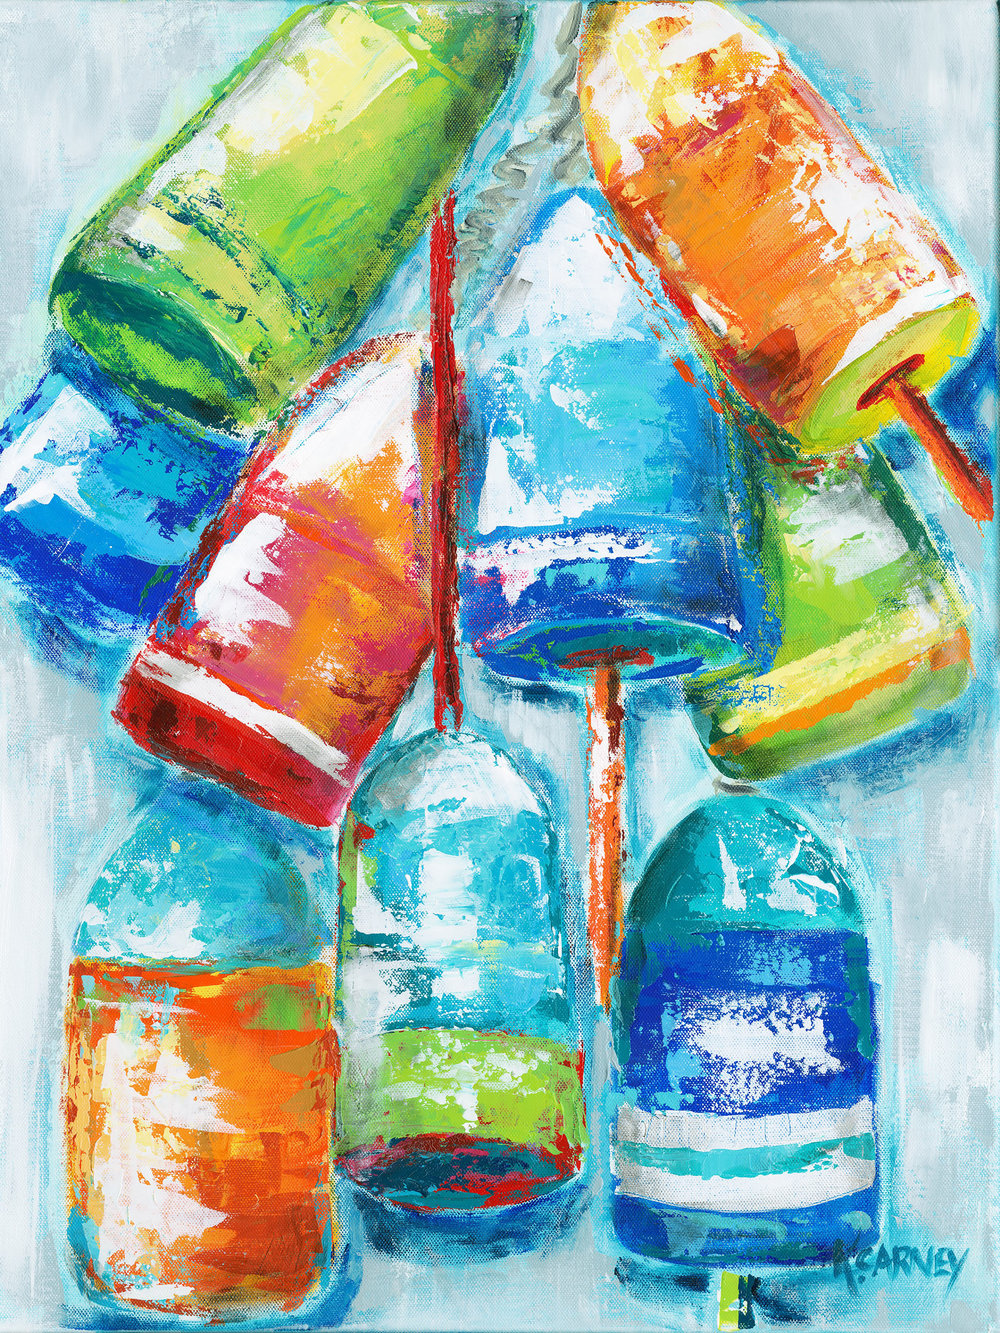 Katherine Carney Bouys Hang Out acrylic at West Annapolis Artworks.jpg